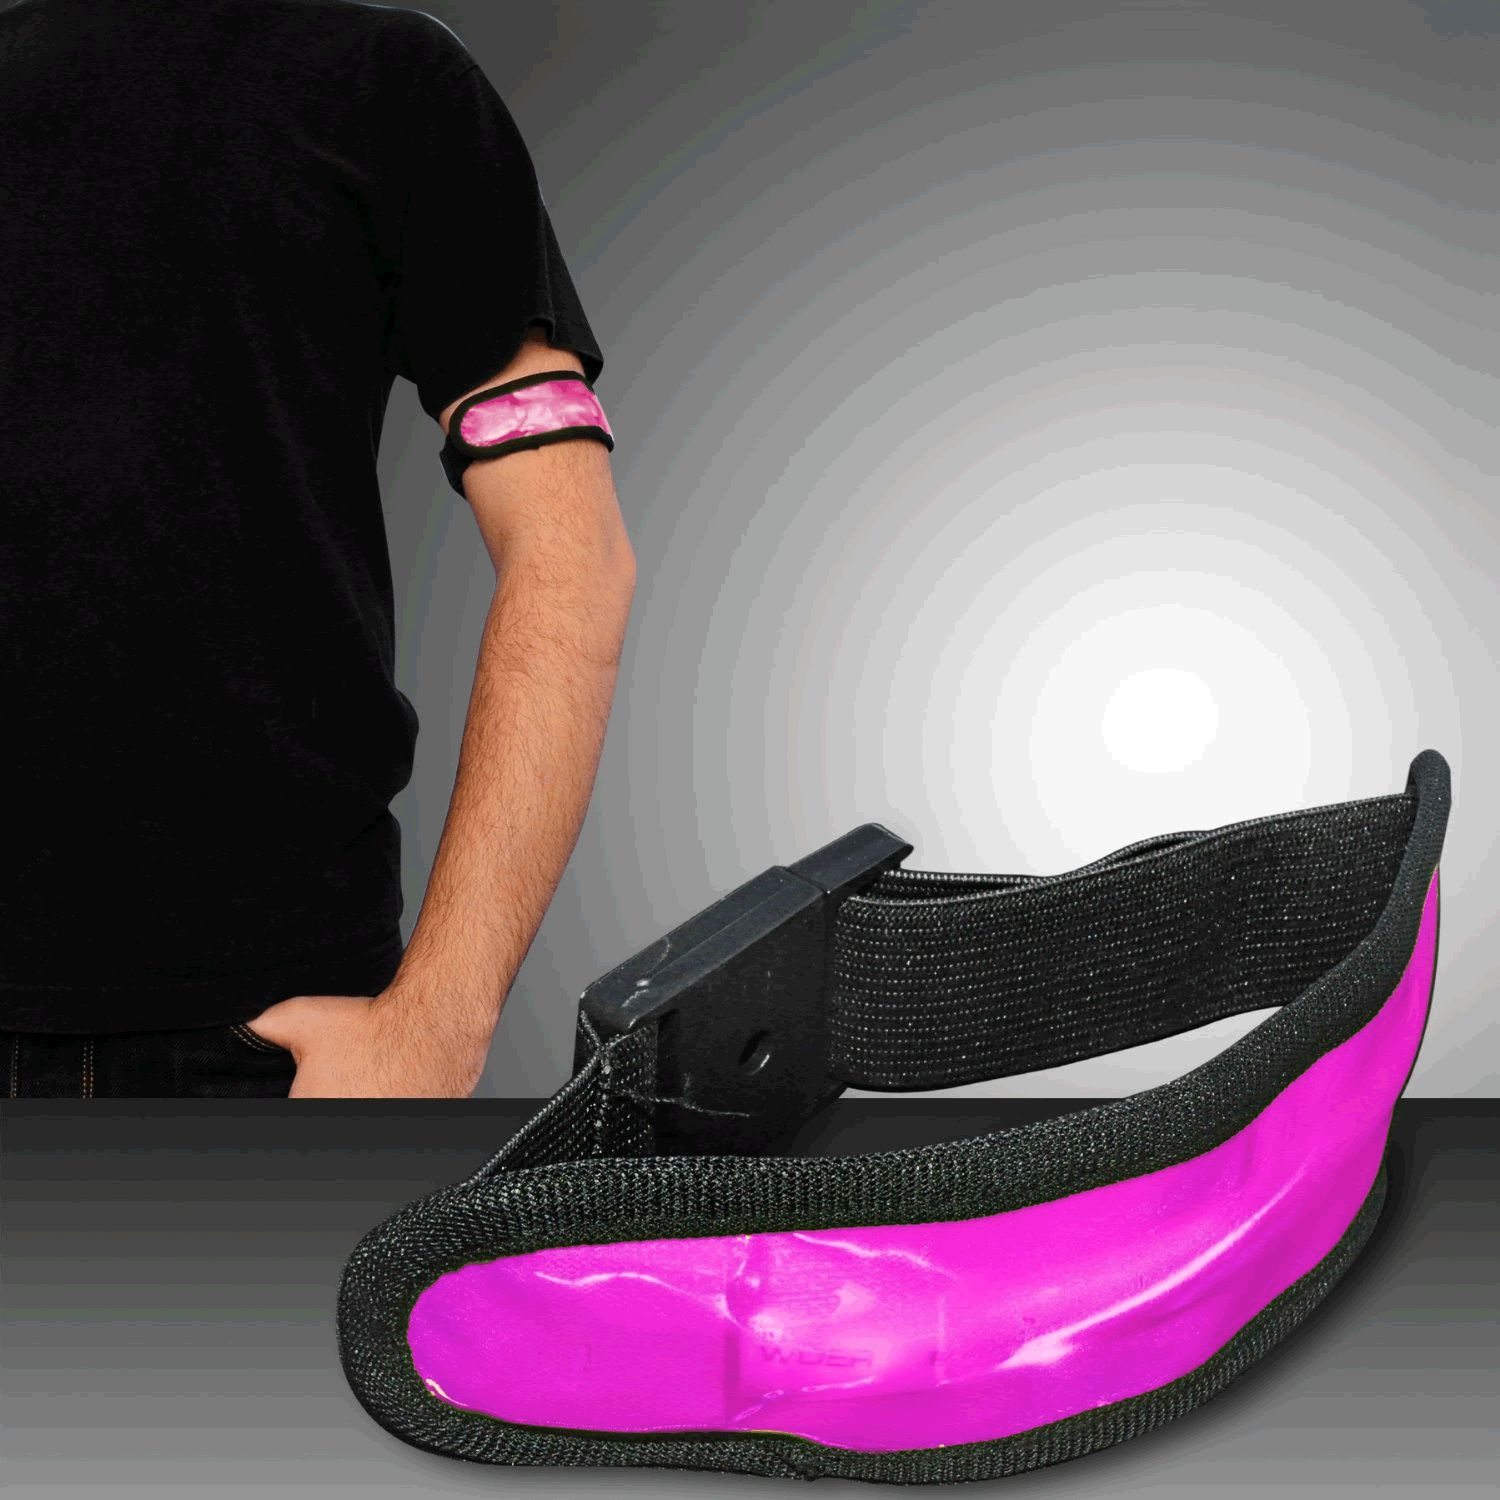 Jogging Bicycling LED Armband Pink by Blinkee